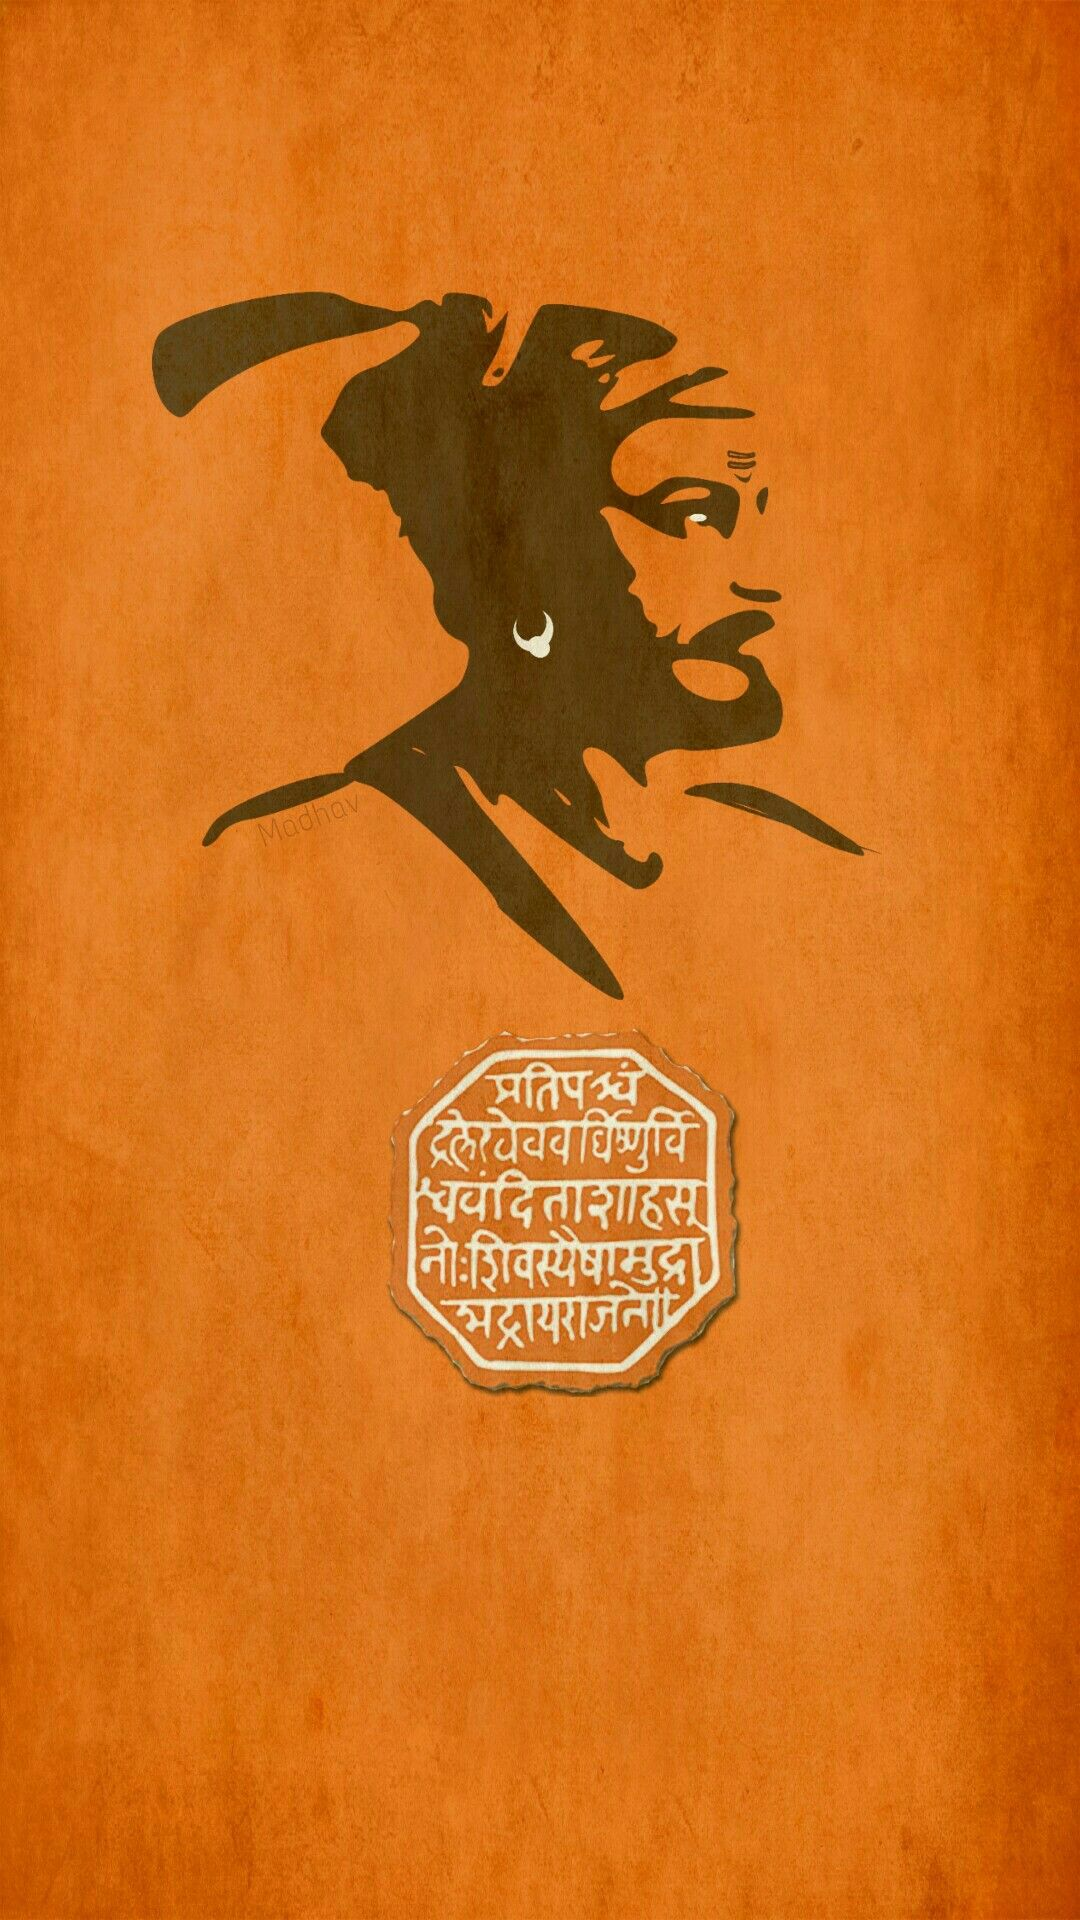 Shivaji Maharaj Mobile Wallpaper Chatrapati Pinterest